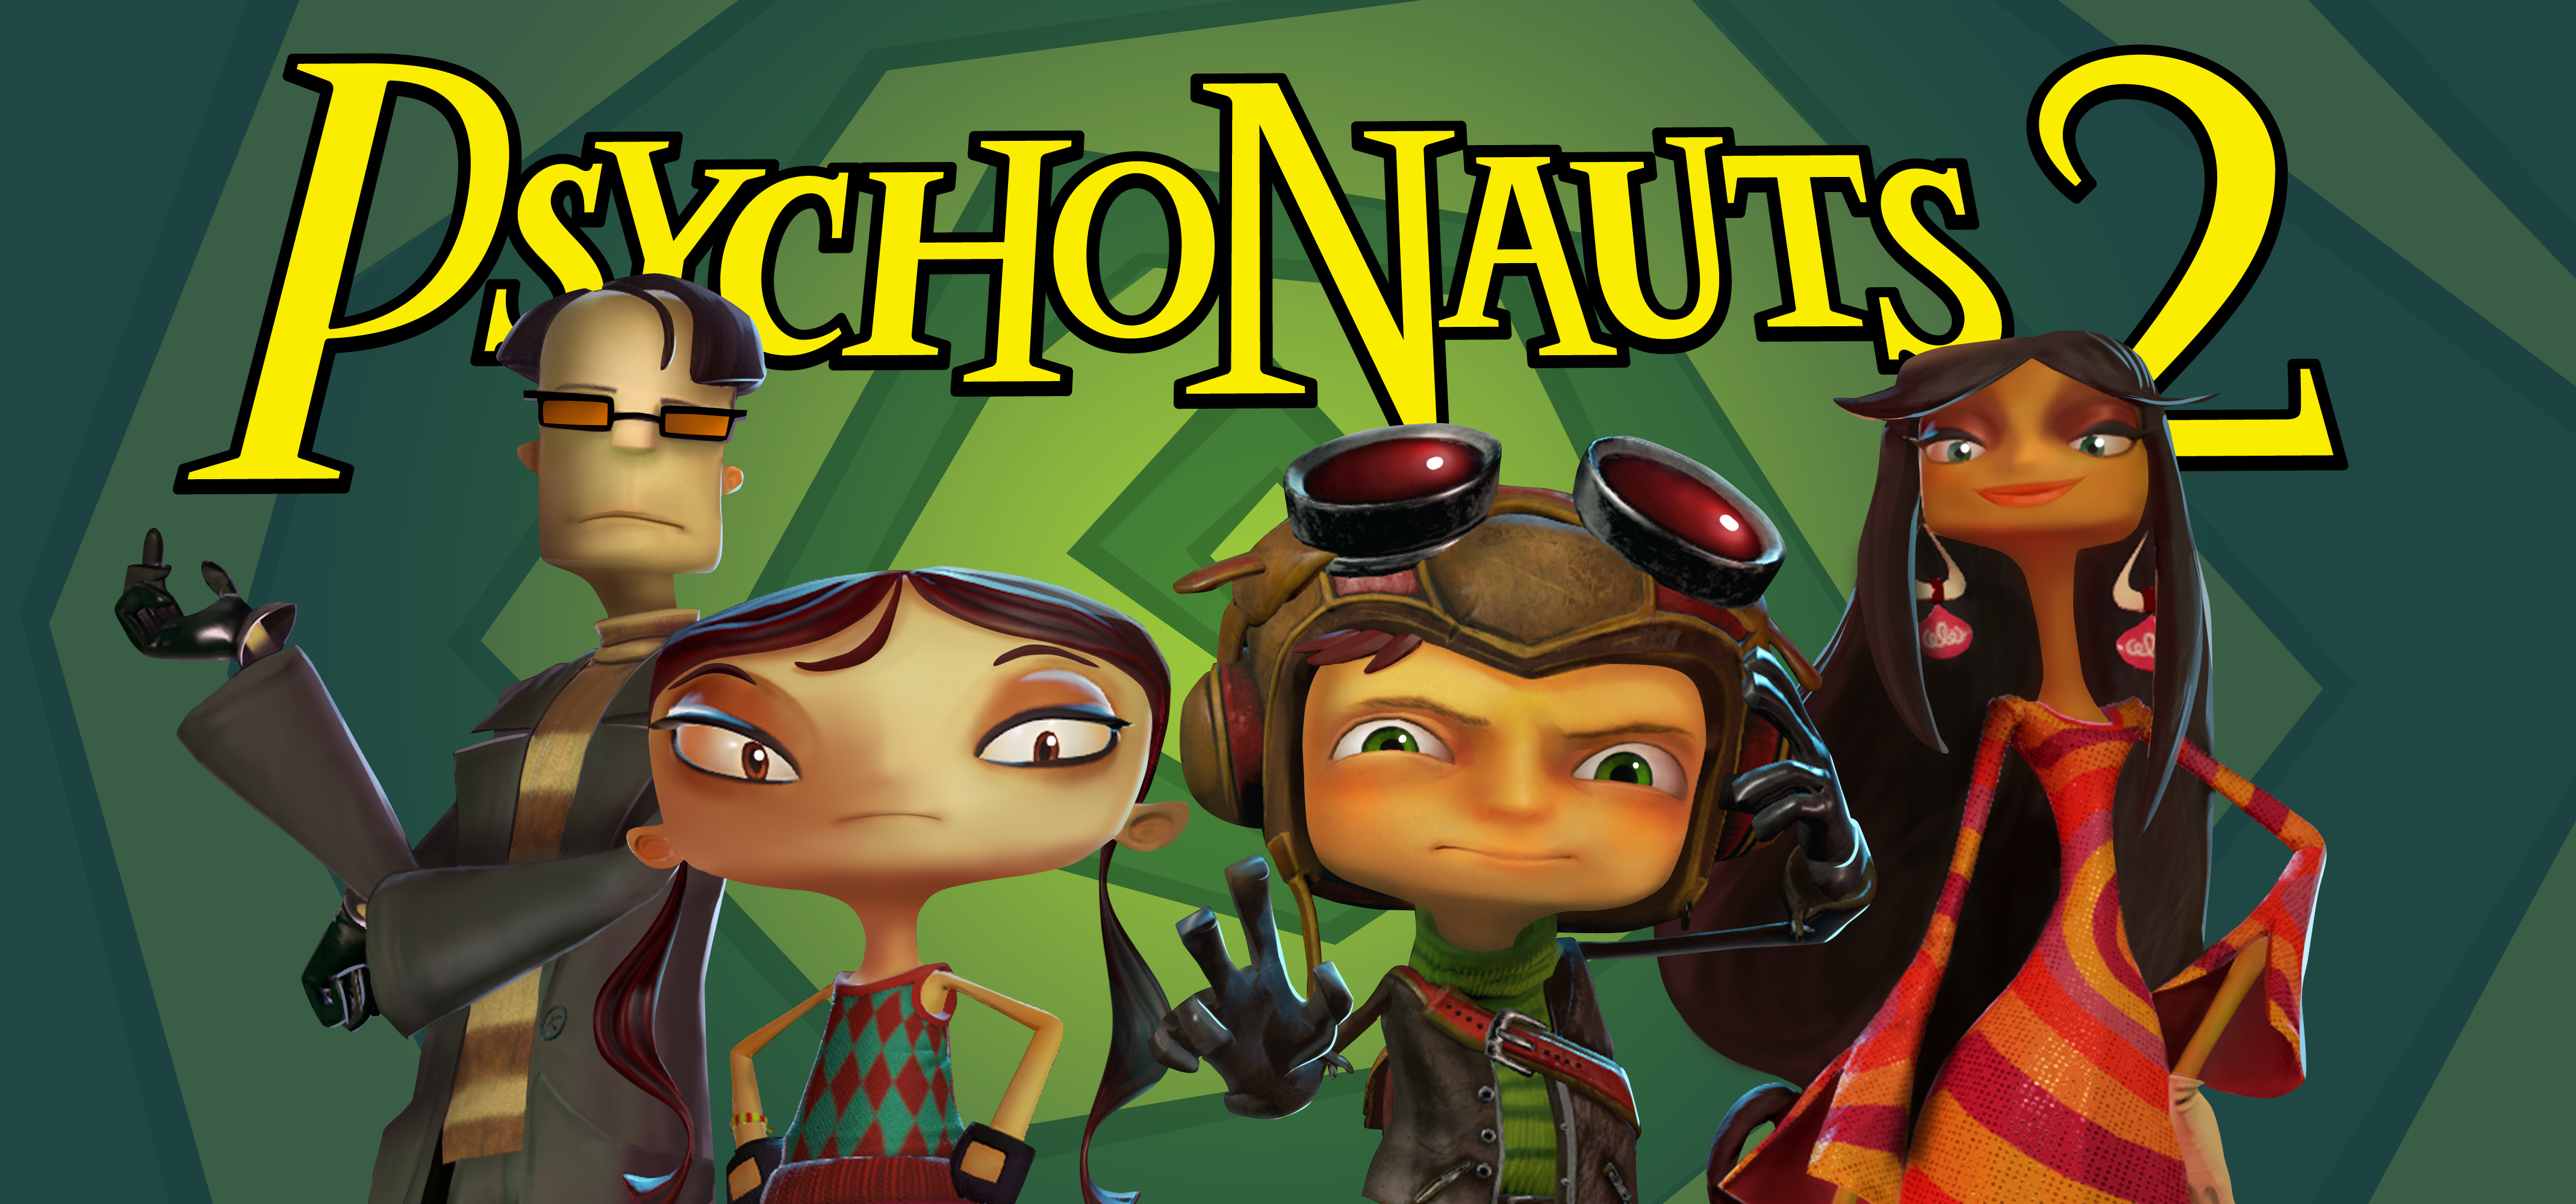 Psychonauts 2 Delayed To 2019 Reveals New Characters in Razs 4278x2000